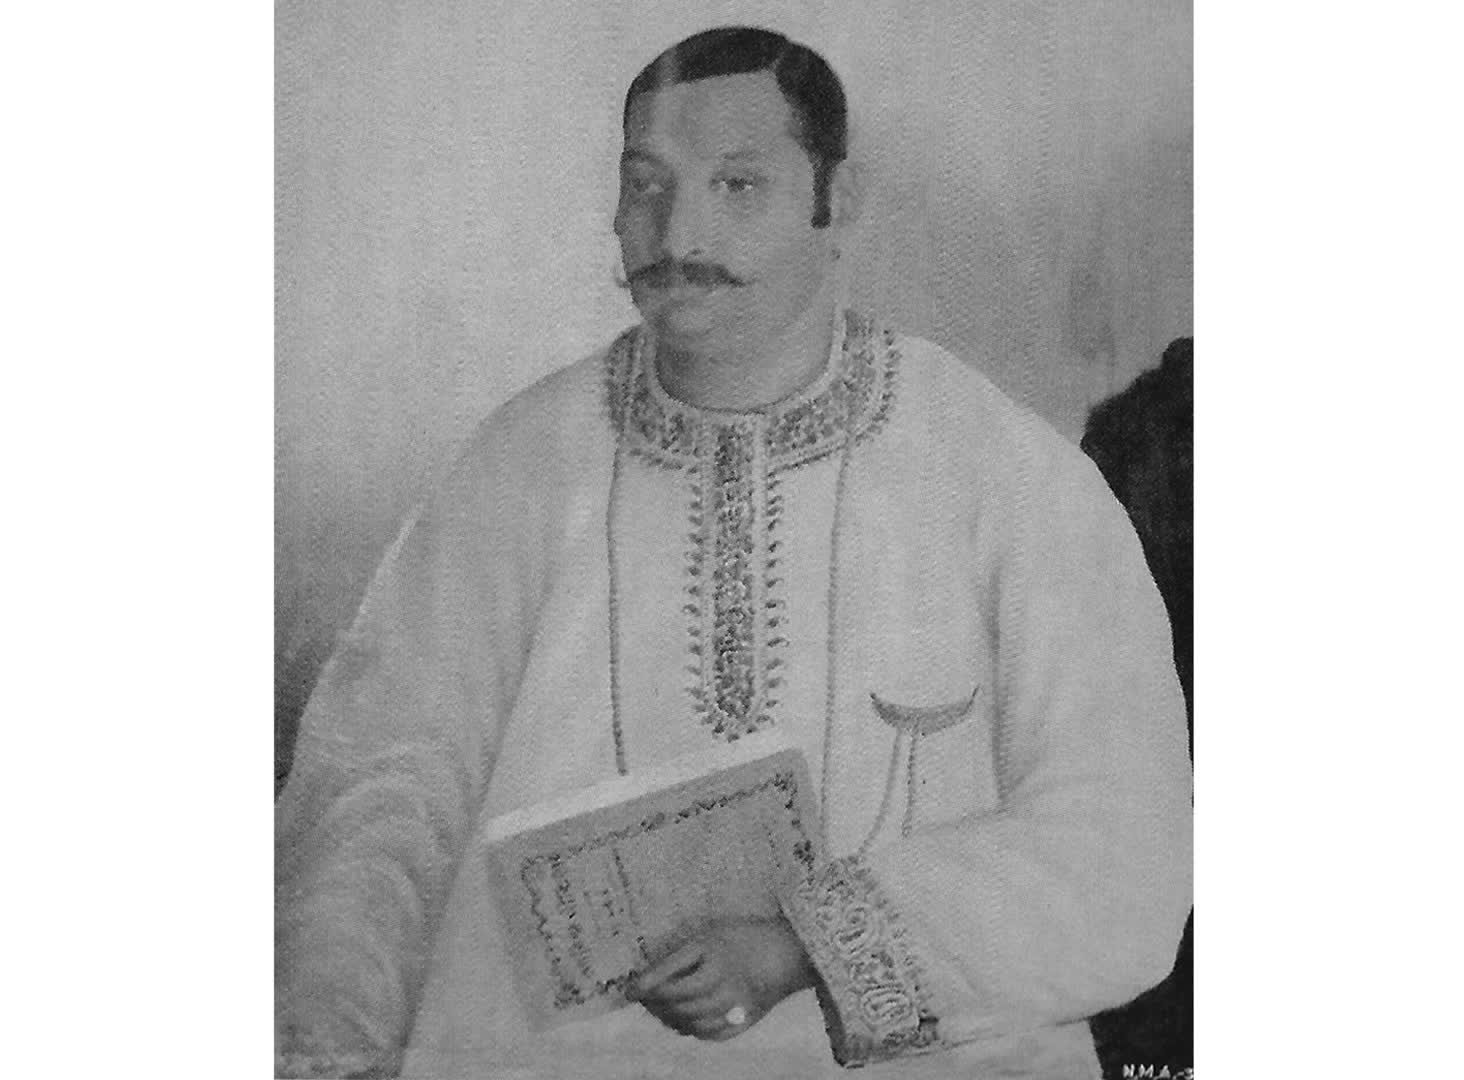 Mahendra Lal Khan was fluent in Farsi and Sanskrit at the age of 15. Apart from being associated with various philanthropic activities he was a talented writer and musician. Most of major built heritage of Narajole was constructed by him